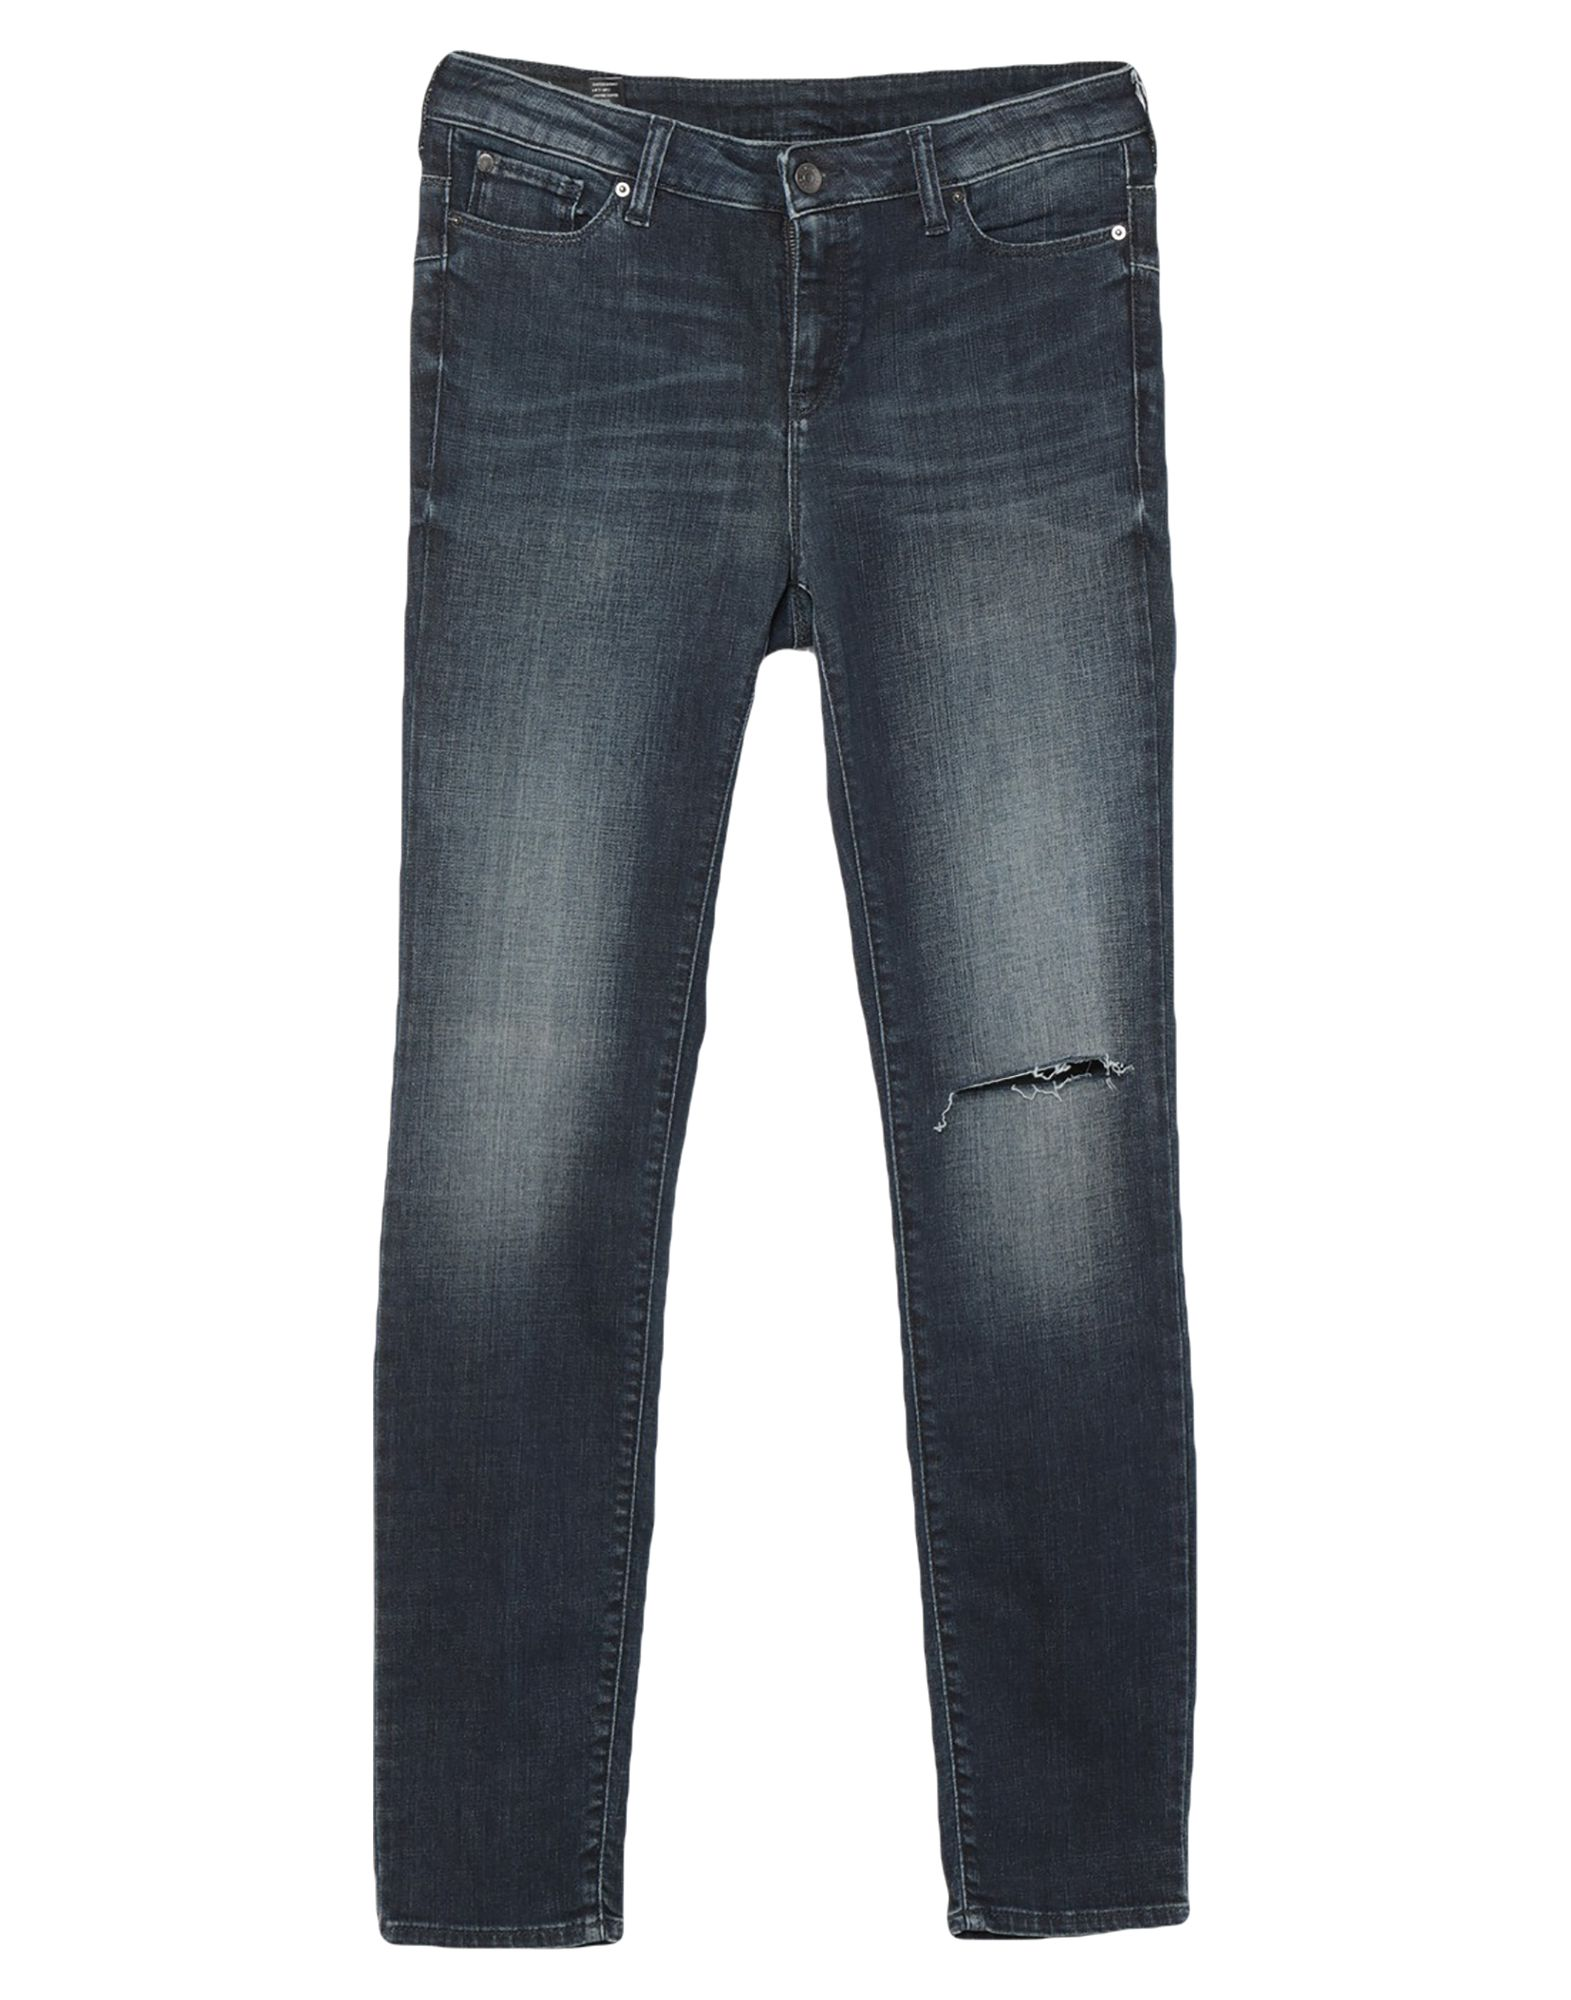 ARMANI EXCHANGE Denim pants - Item 42808487